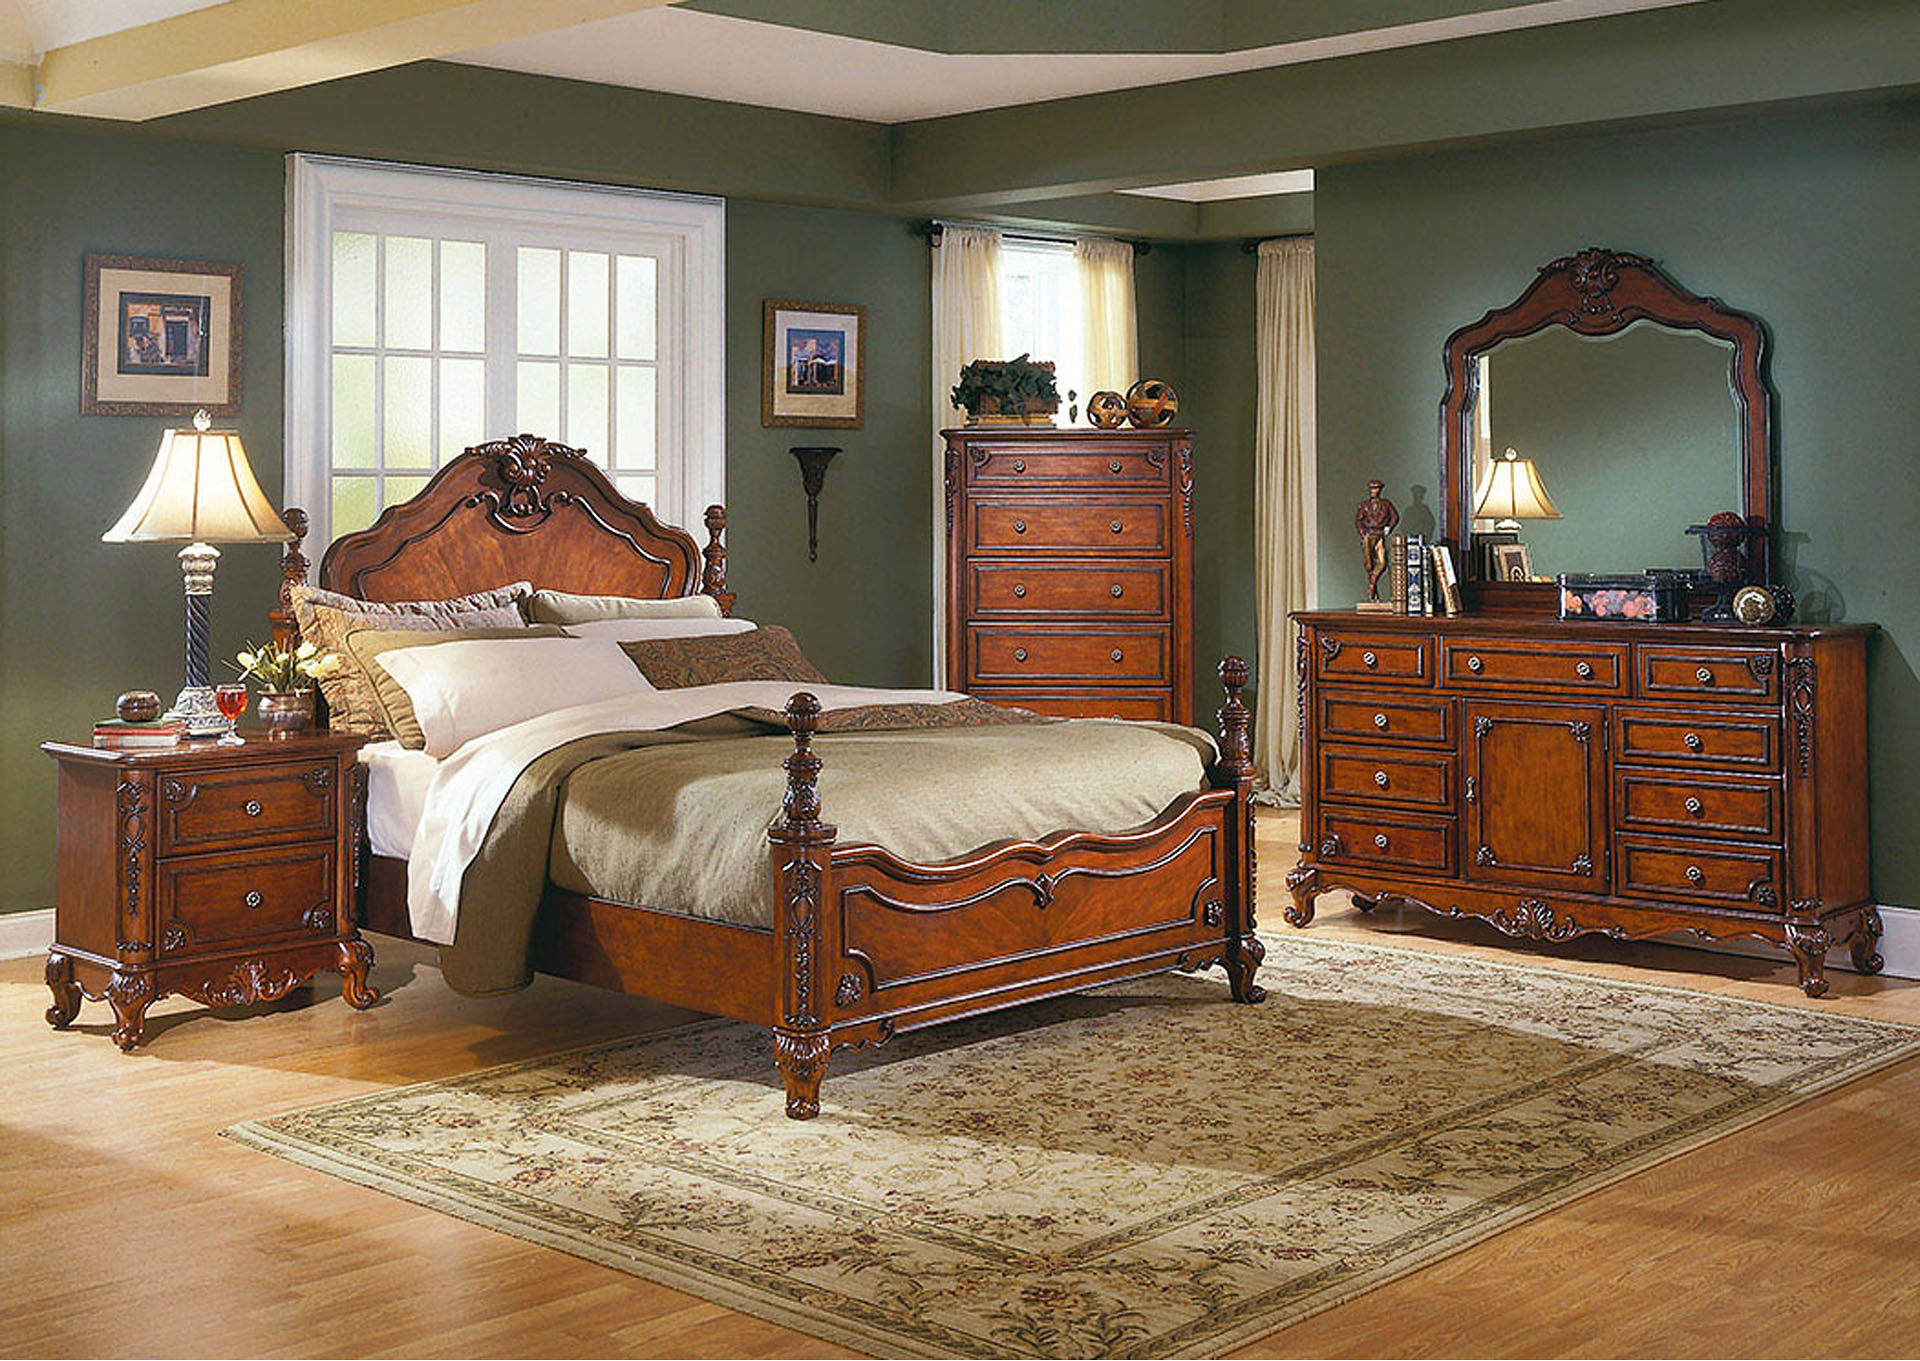 Madaleine Warm Cherry California King Bed,Homelegance